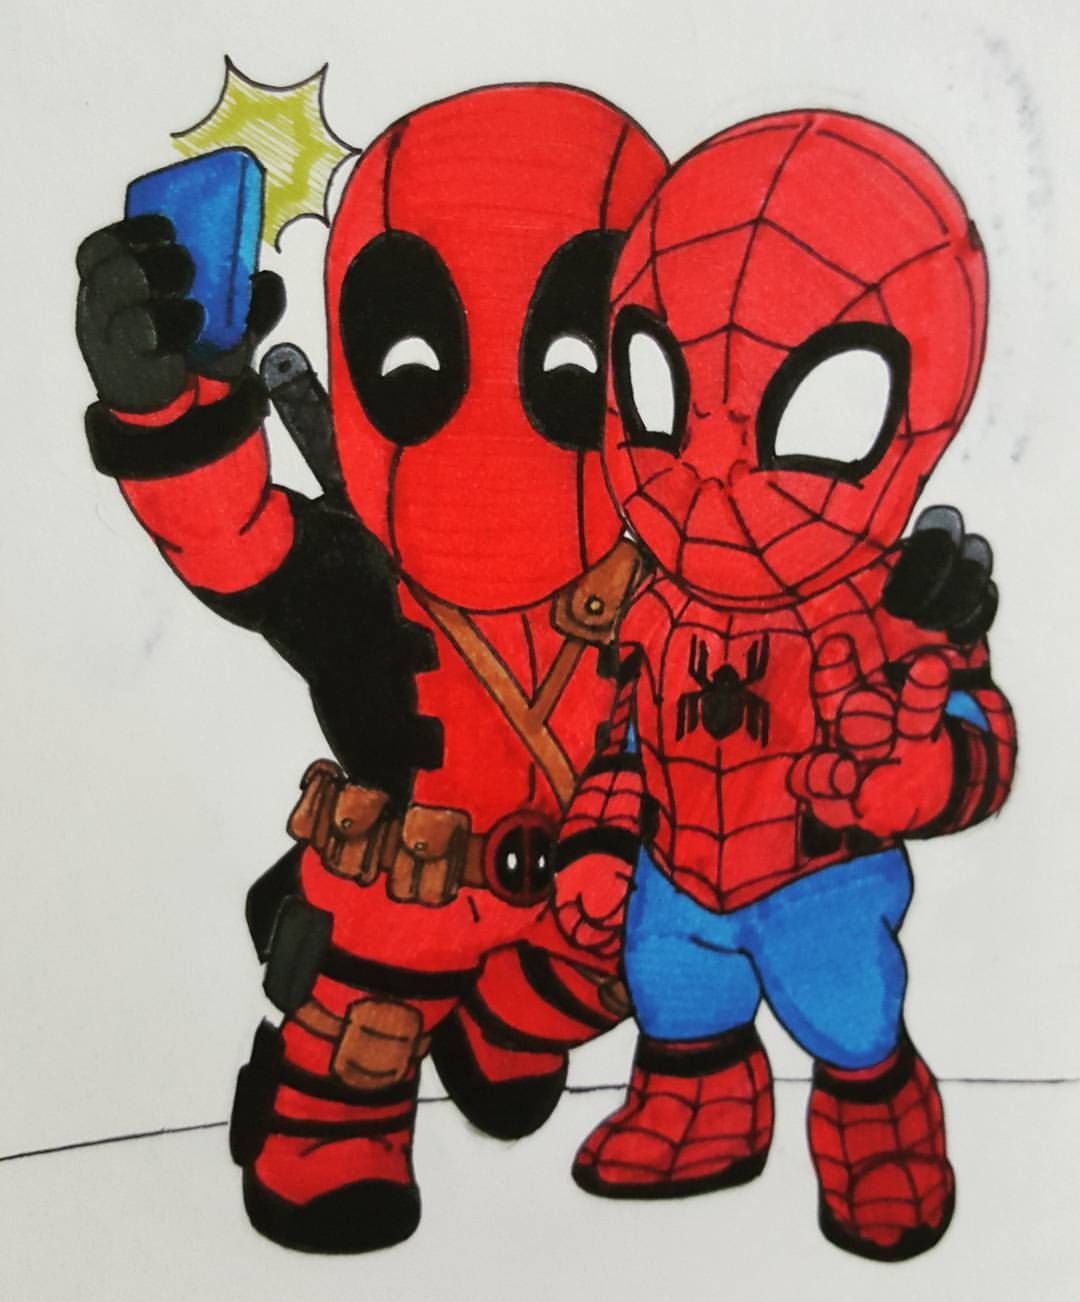 #Deadpool #Fan #Art. Chili Deadpool And Spider-Man) By